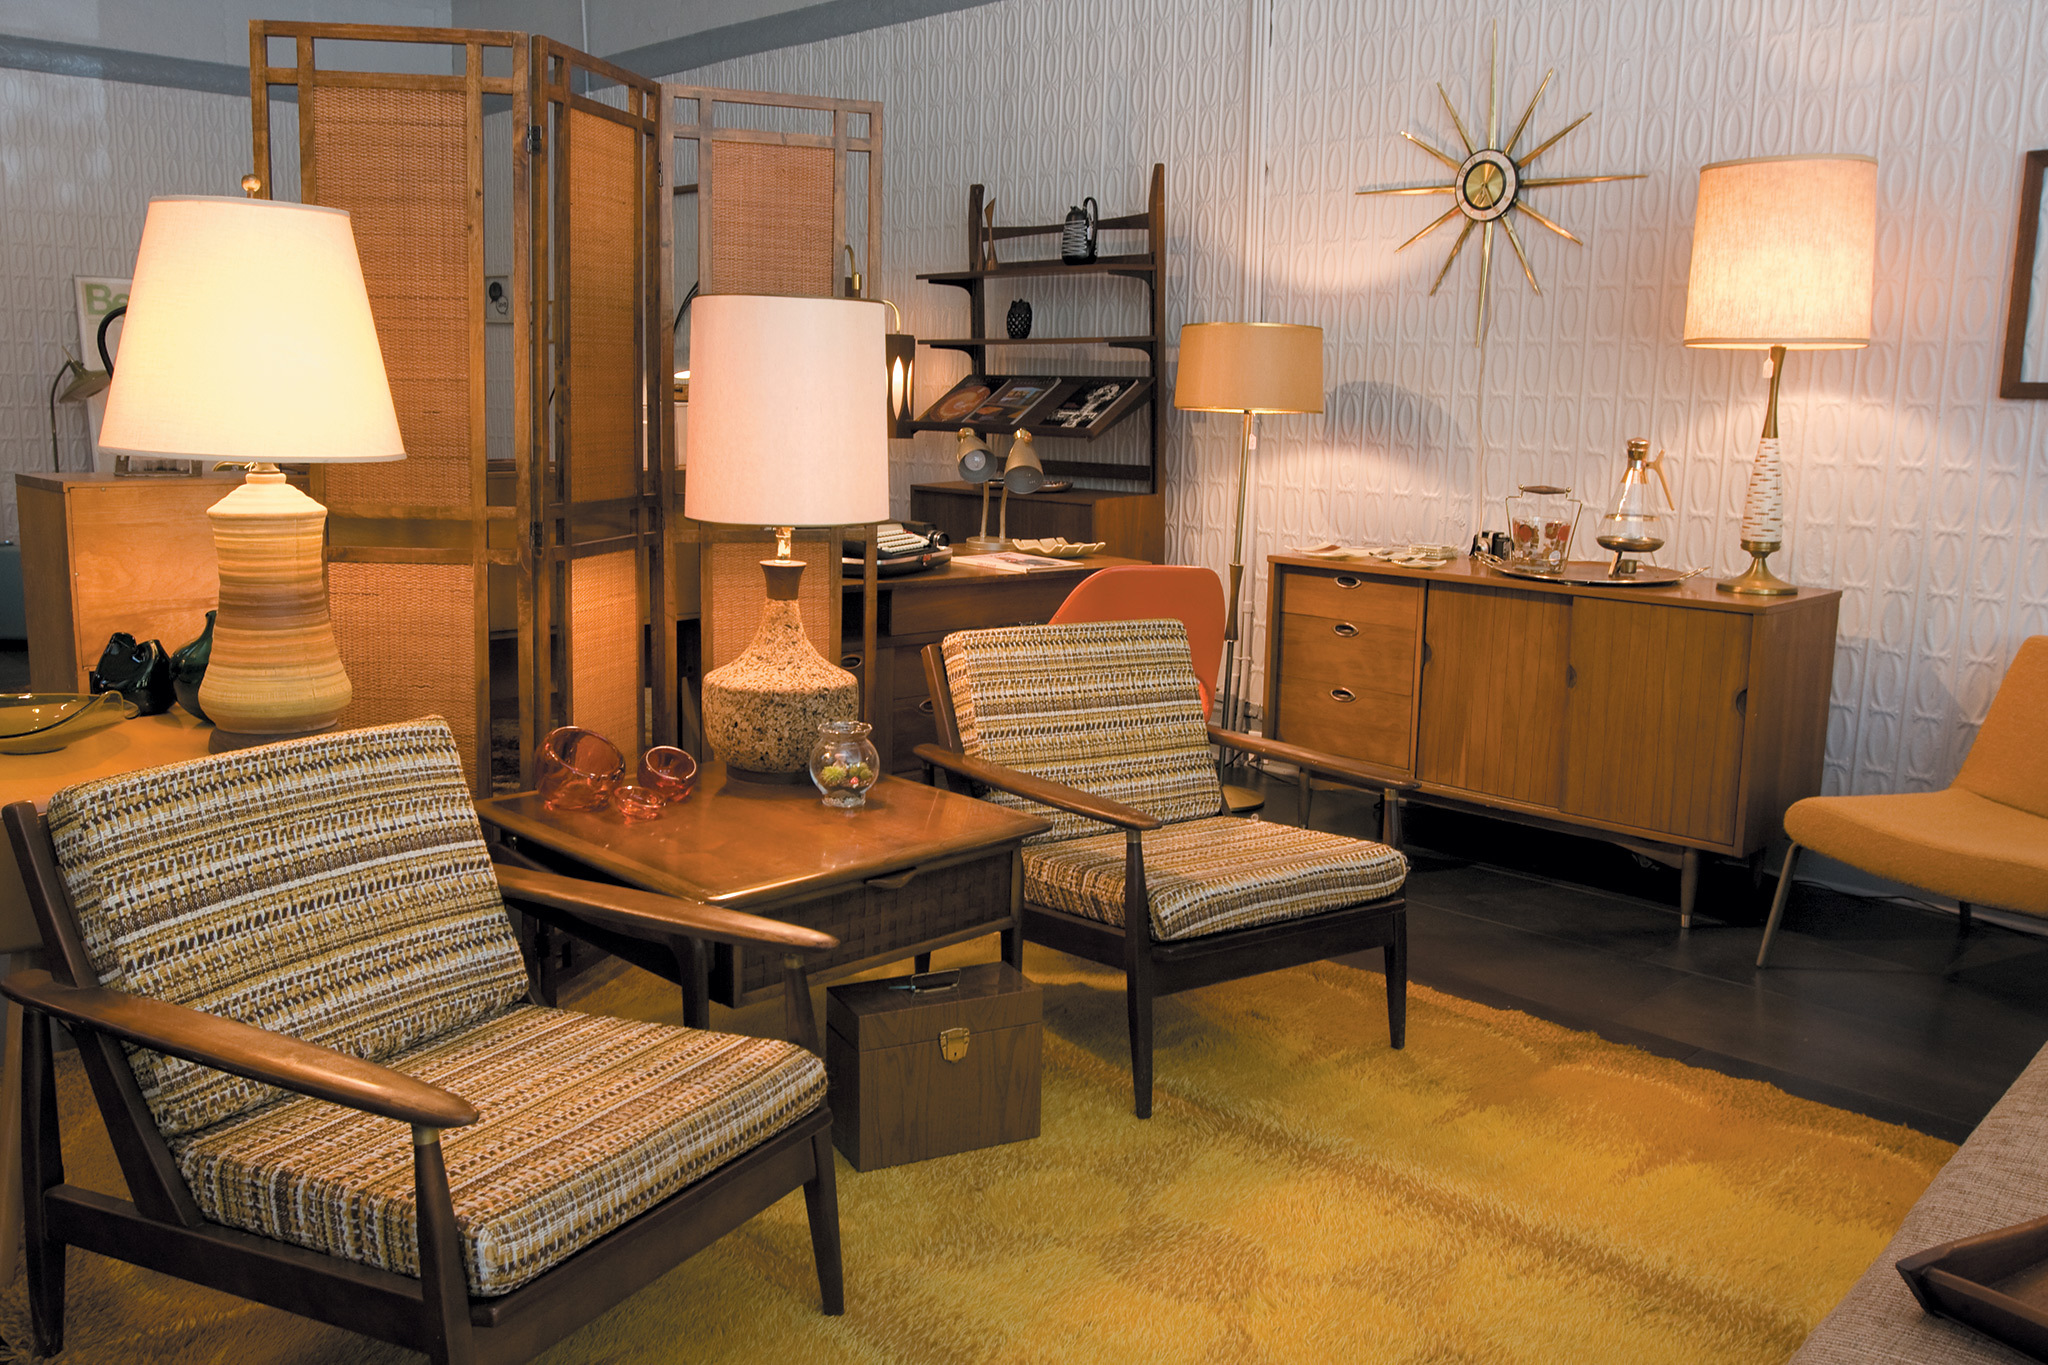 Furniture Stores In Chicago For Home Goods And Decor